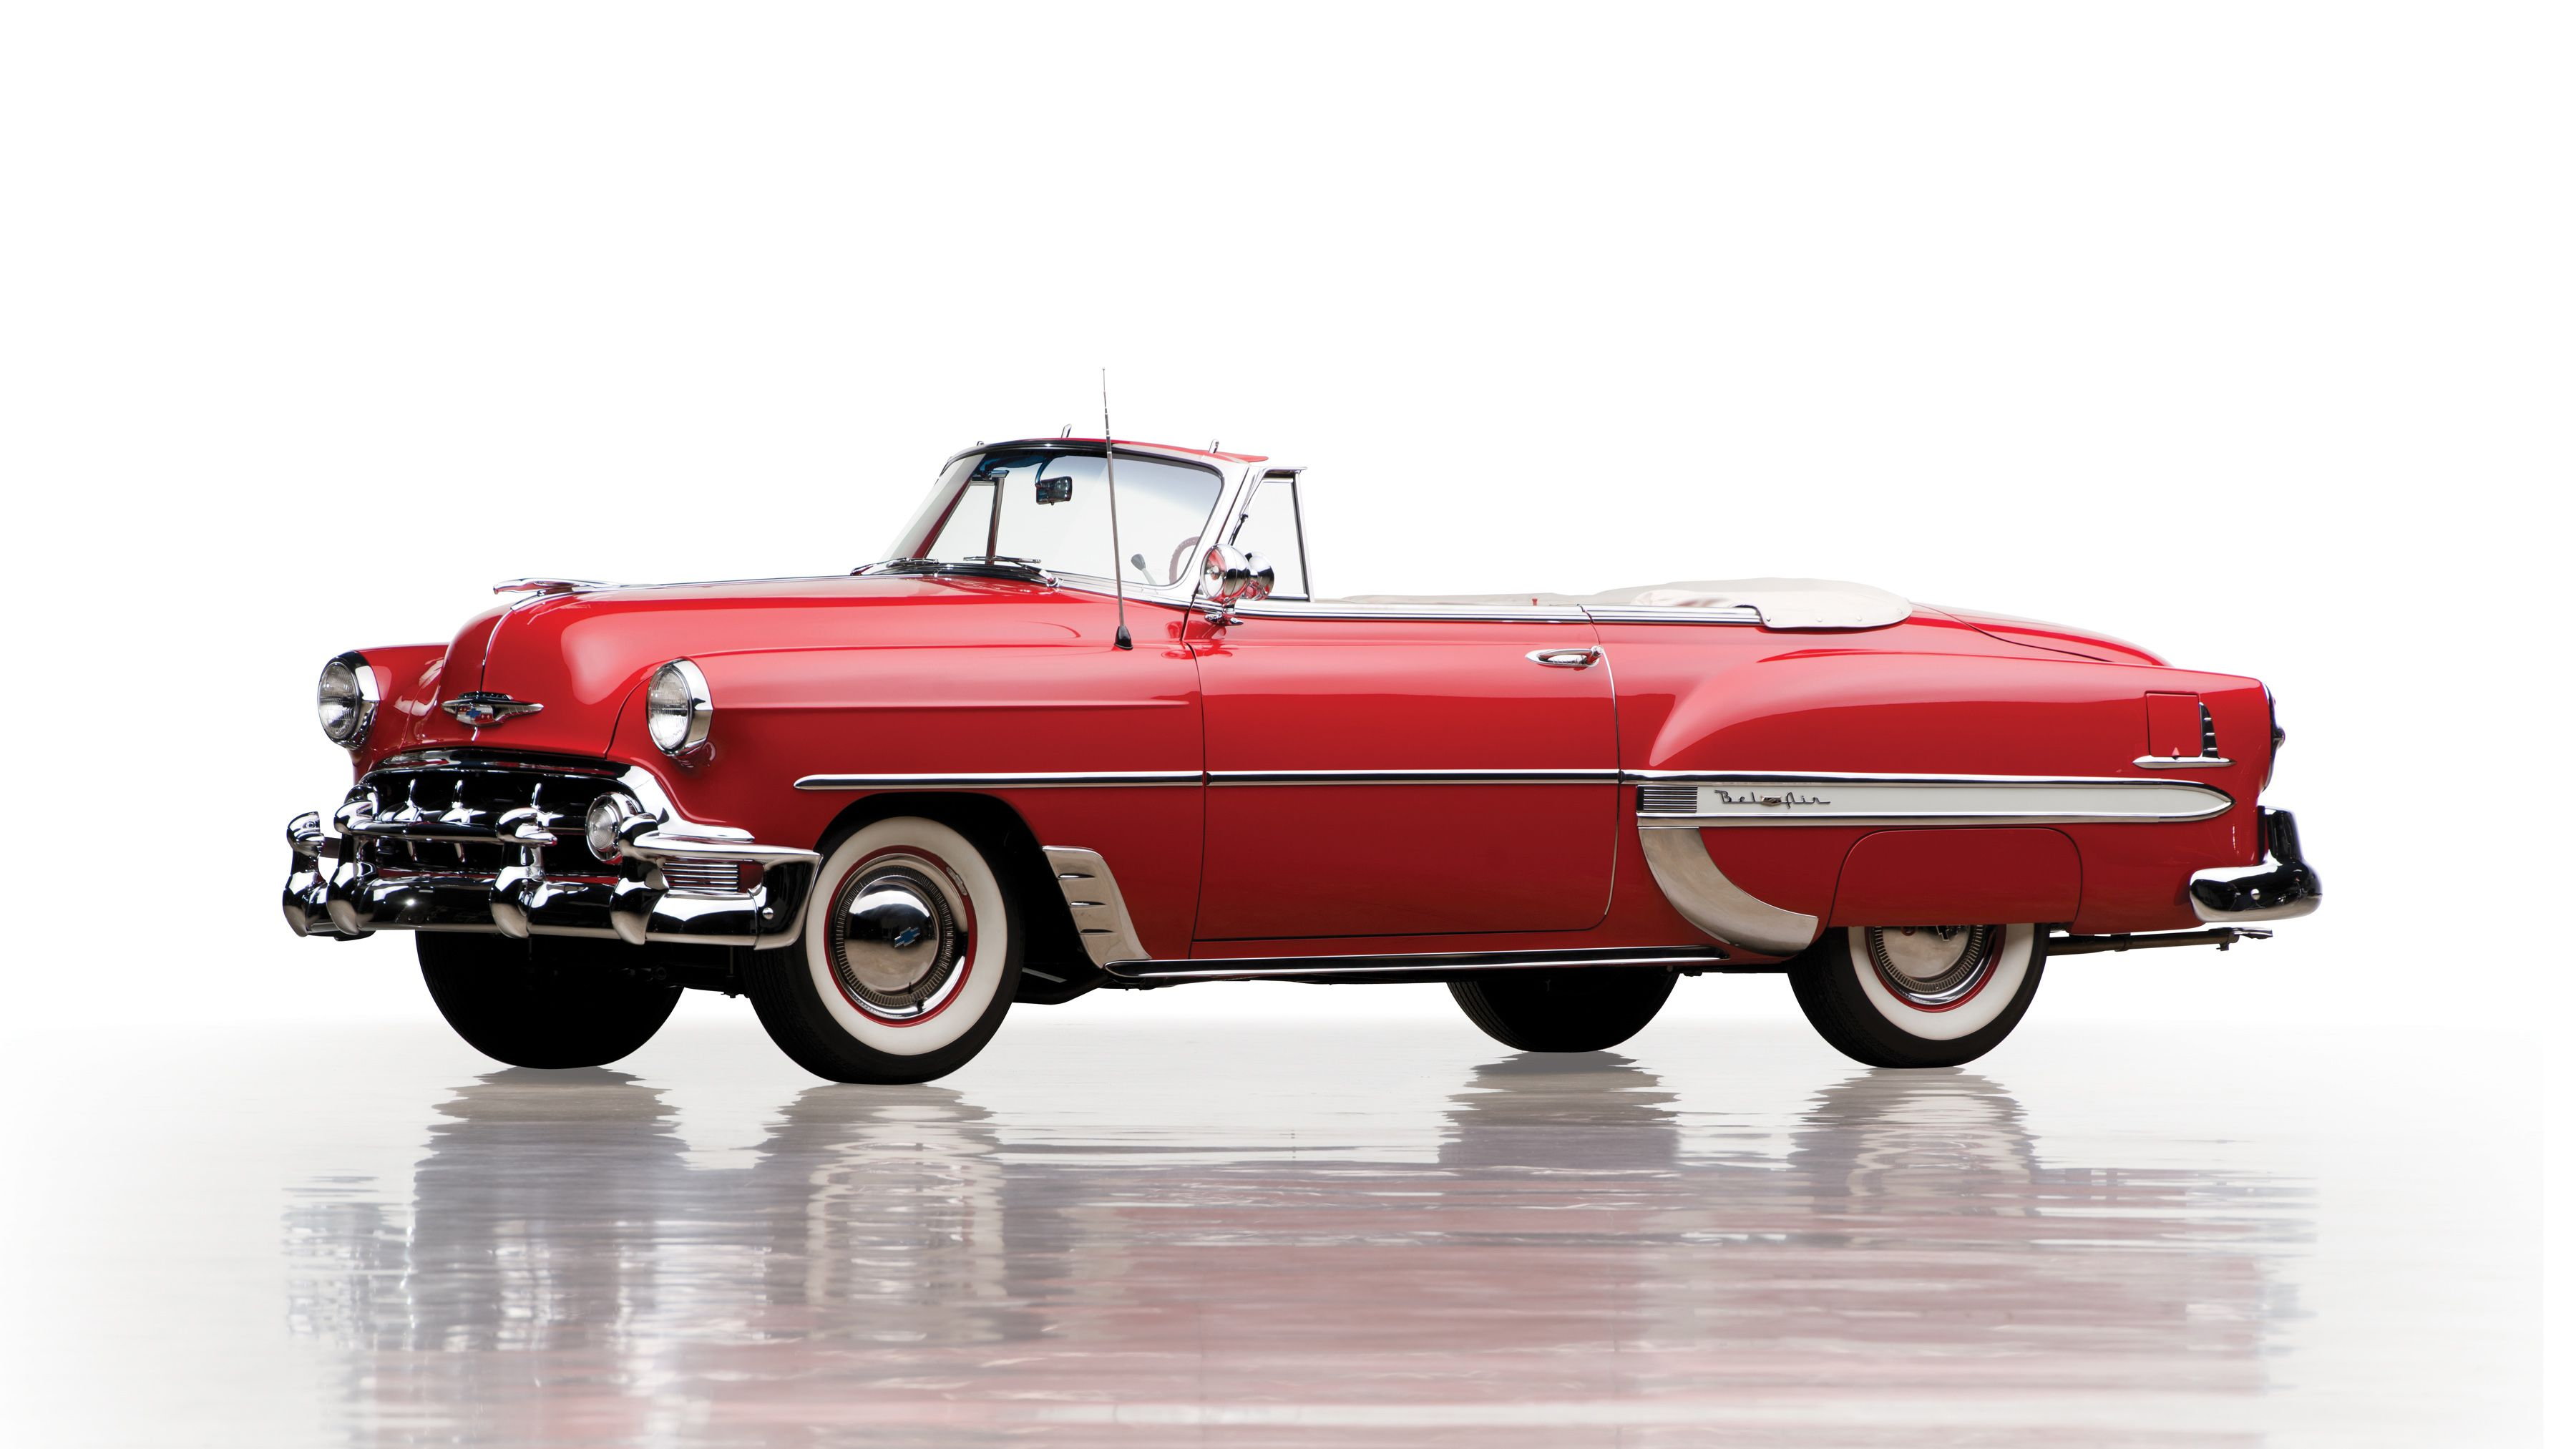 Chevrolet Bel Air Convertible 1953 | Collection Cars | Pinterest ...